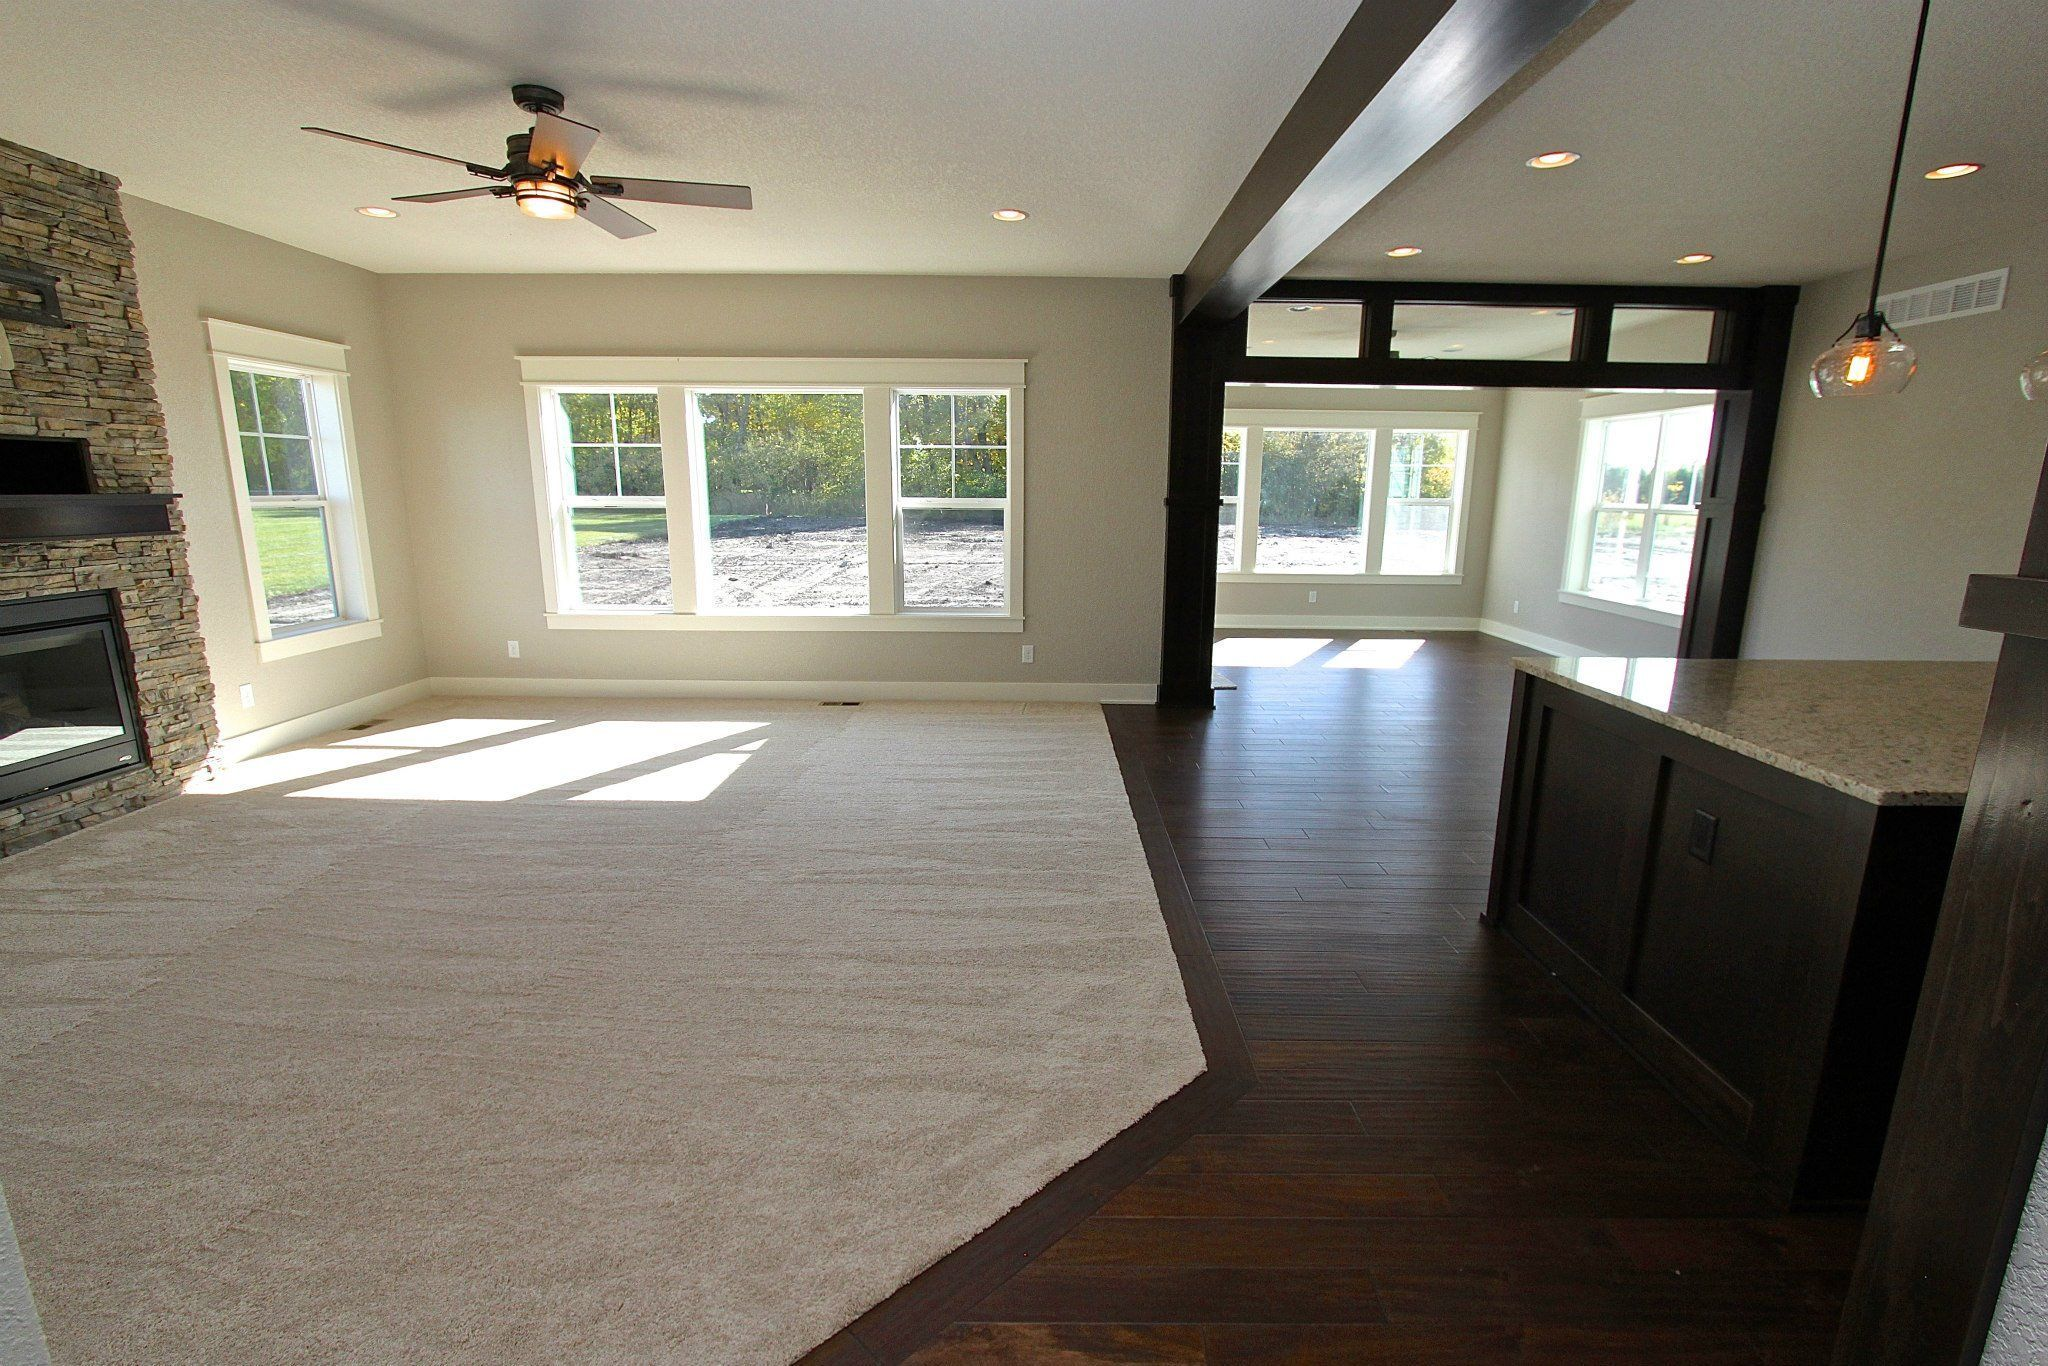 Image Result For Large Basement With Angled Carpet Transition Carpet To Tile Transition House Flooring Flooring Options